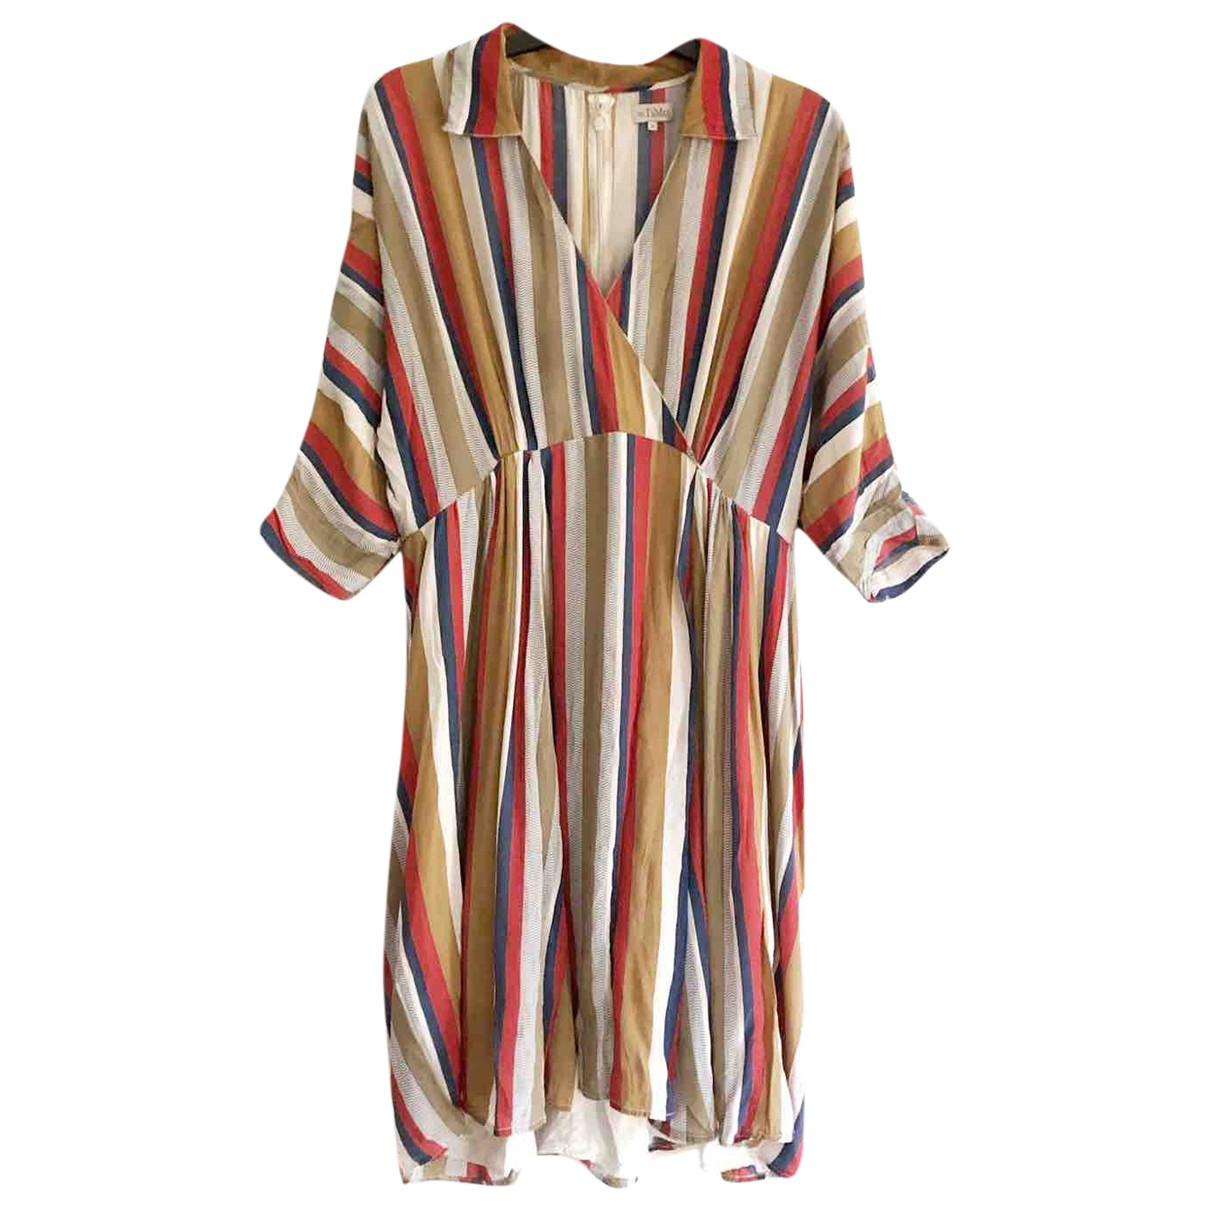 By Timo - Robe   pour femme - multicolore